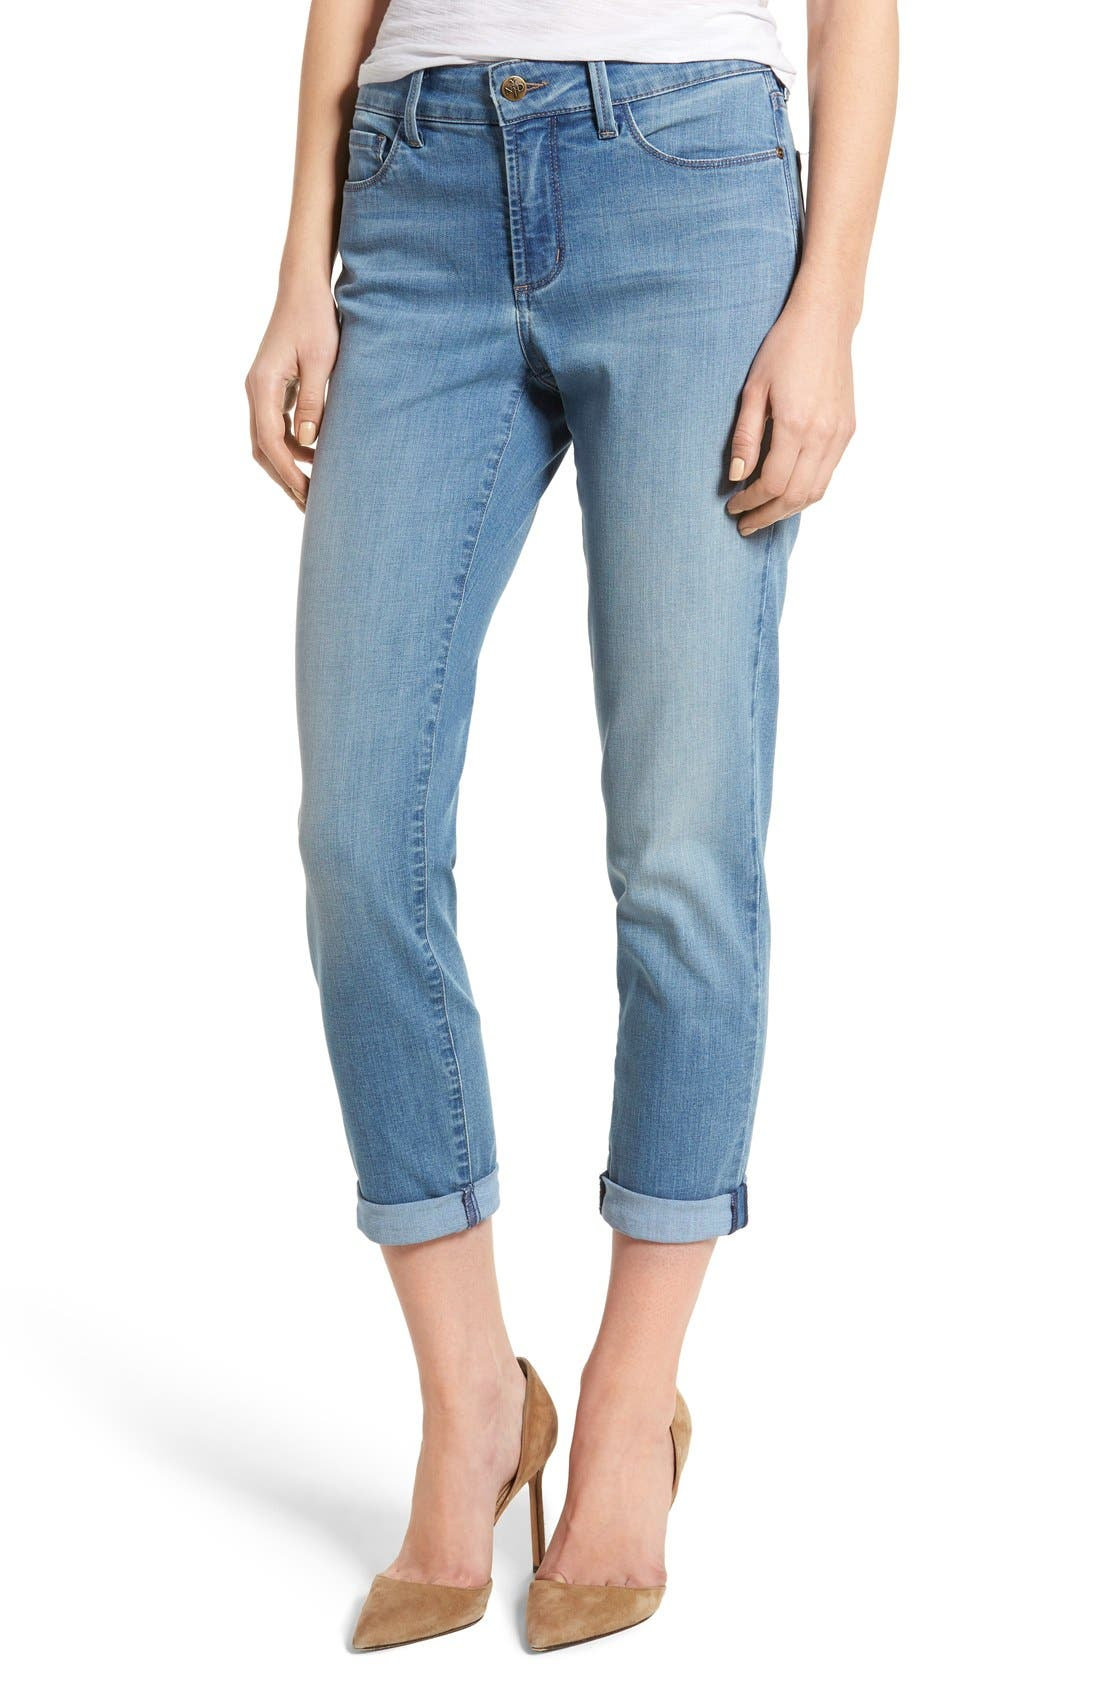 Alternate Image 1 Selected - NYDJ Alina Roll Cuff Stretch Ankle Skinny Jeans (Pampelonne) (Regular & Petite)